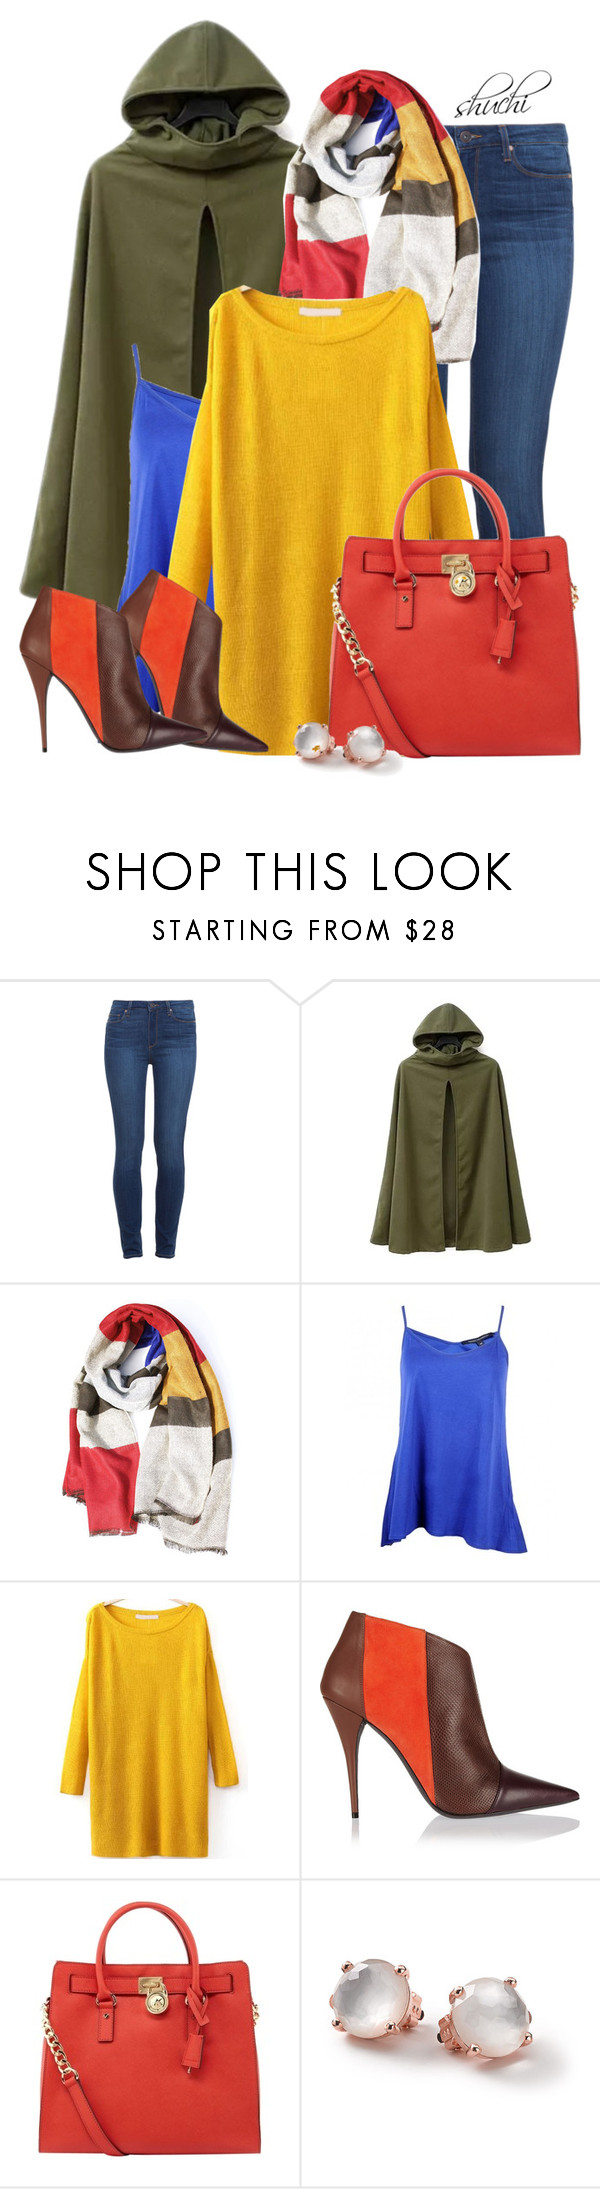 """""""Colorfully Cloaked"""" by shuchiu ❤ liked on Polyvore featuring Paige Denim, Hooded Trench, French Connection, Narciso Rodriguez, MICHAEL Michael Kors and Ippolita"""